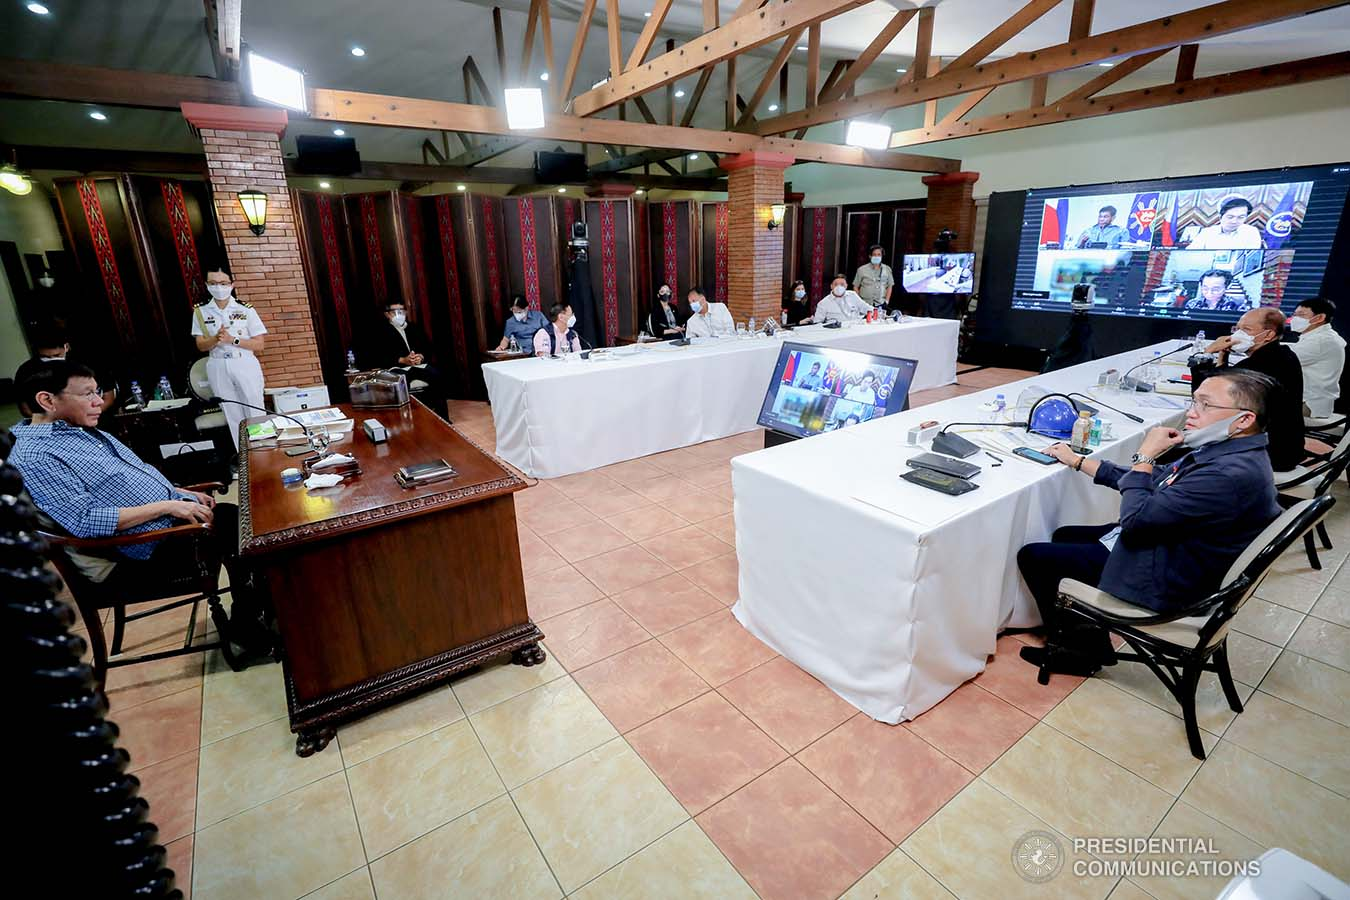 President Rodrigo Roa Duterte presides over a meeting with the Inter-Agency Task Force on the Emerging Infectious Diseases (IATF-EID) core members prior to his talk to the people at the Malacañang Golf (Malago) Clubhouse in Malacañang Park, Manila on May 13, 2021. RICHARD MADELO/ PRESIDENTIAL PHOTO